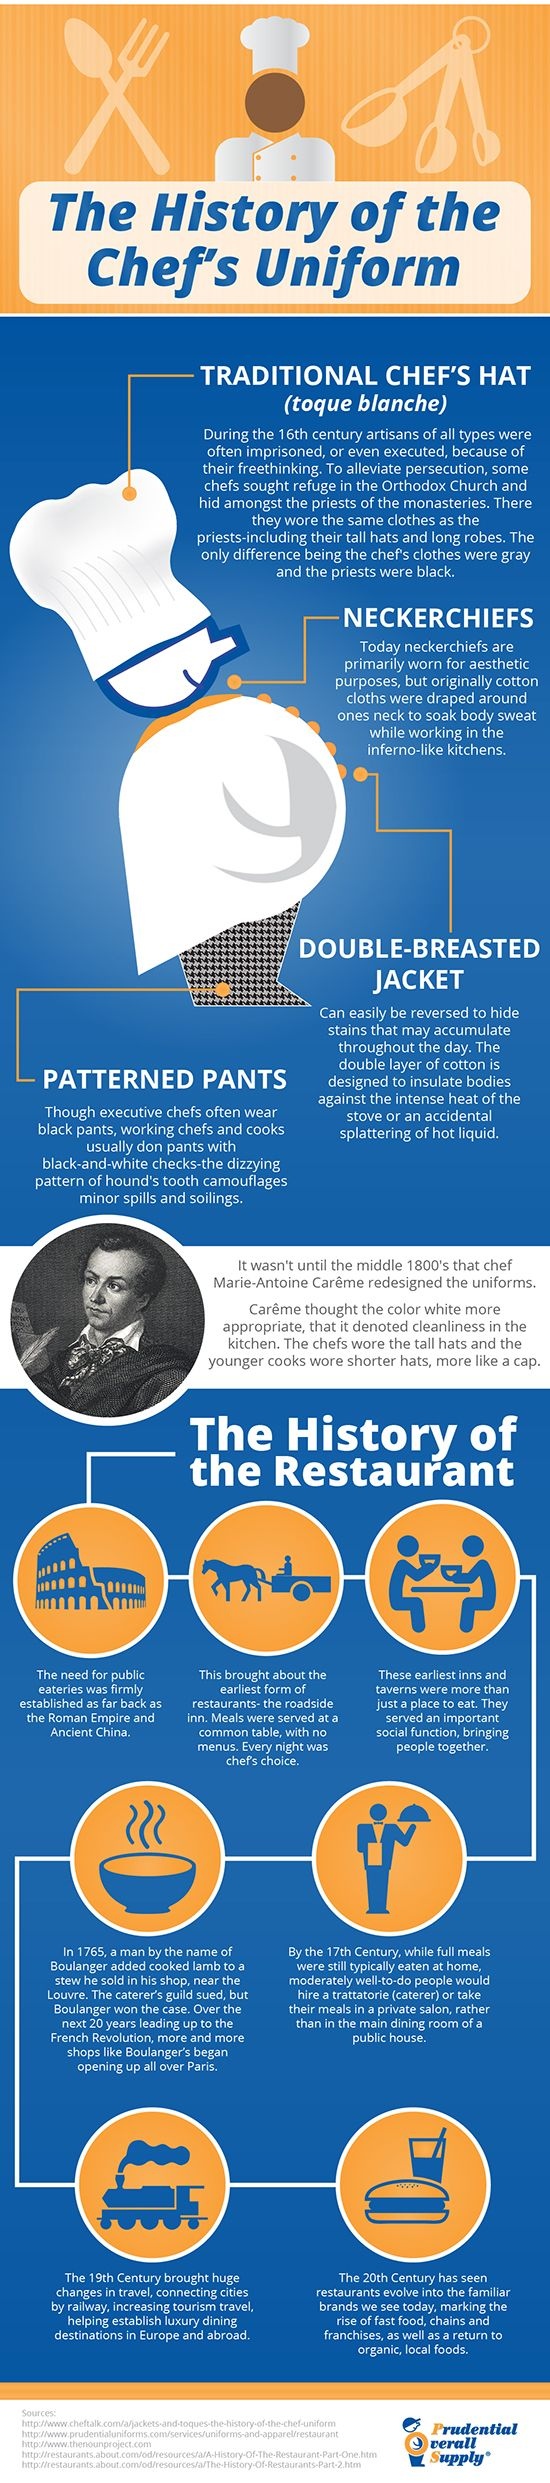 The History of the Chef's Uniform and History of the